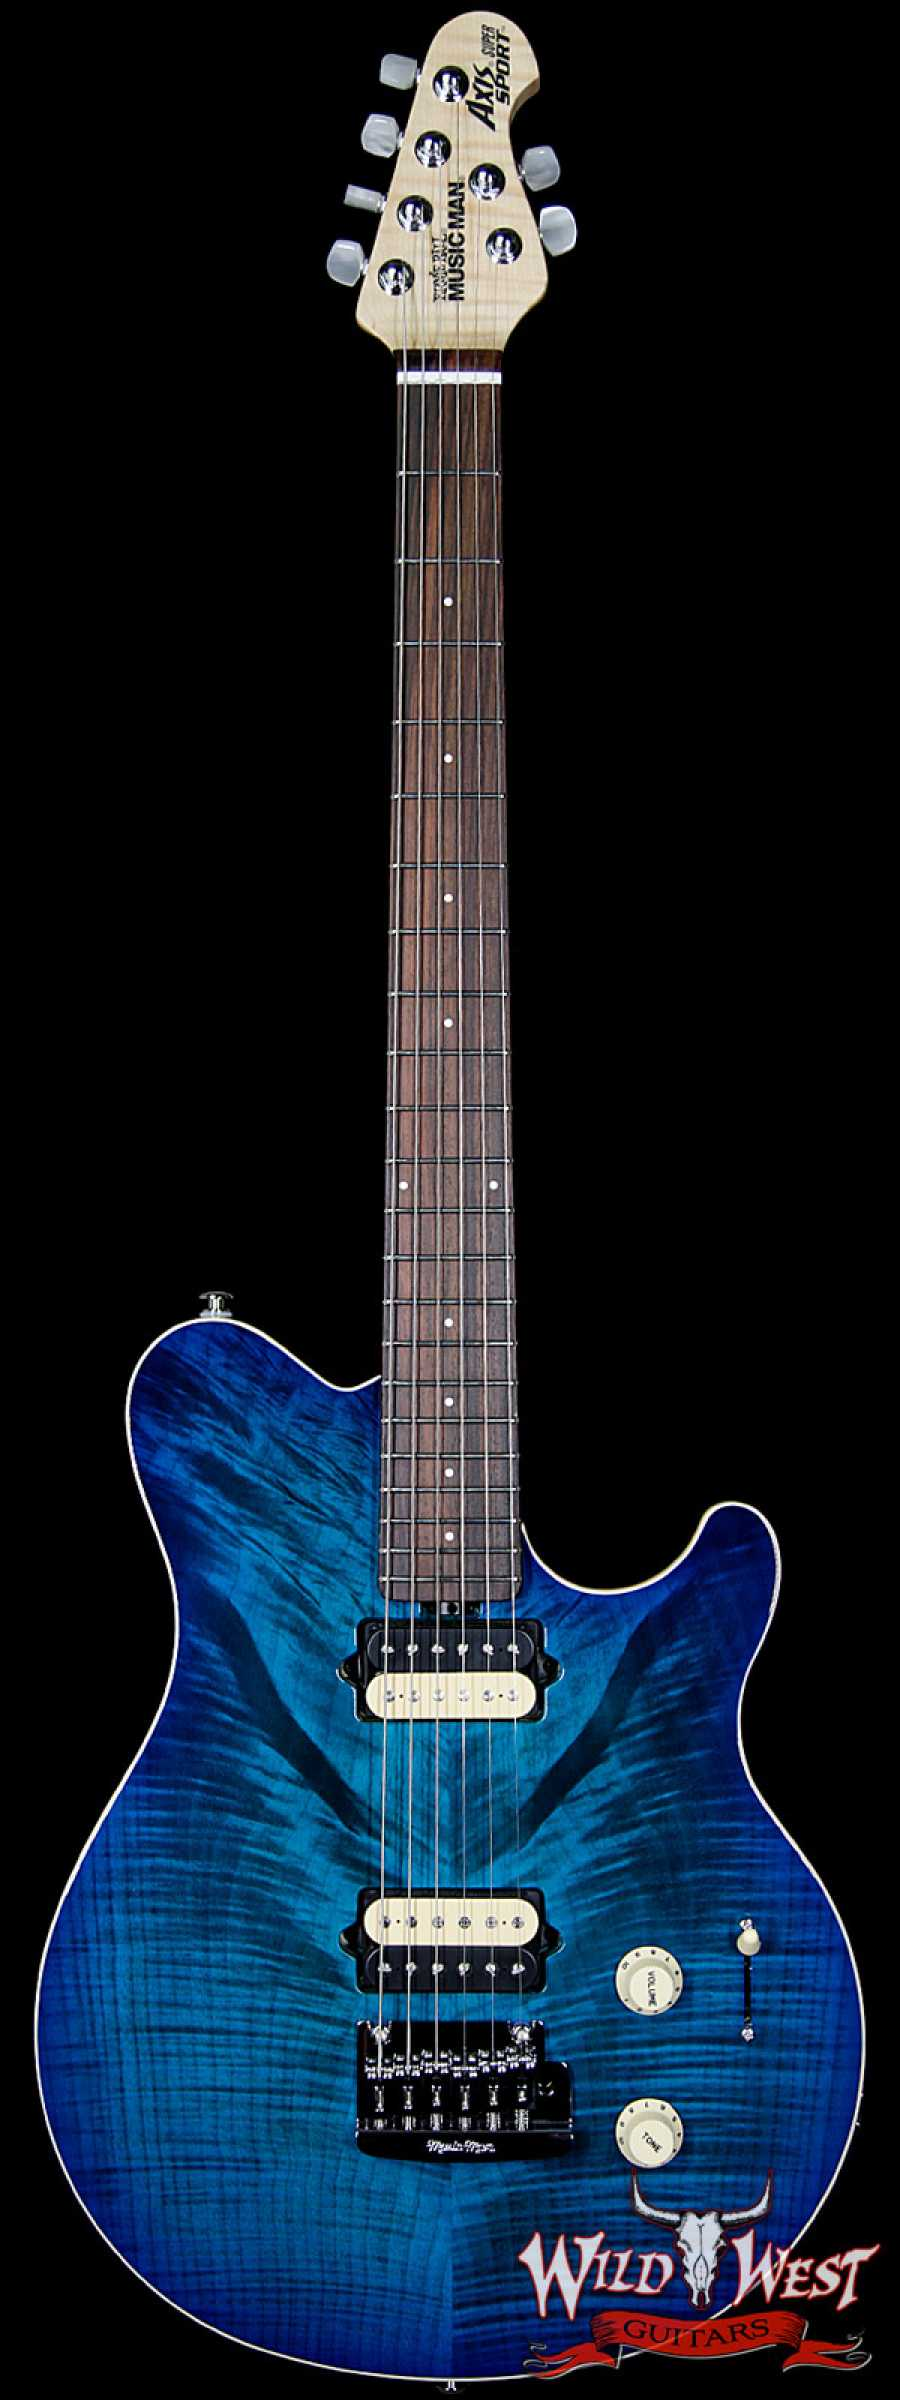 ernie ball music man axis super sport flame maple top rosewood fretboard balboa blue burst. Black Bedroom Furniture Sets. Home Design Ideas